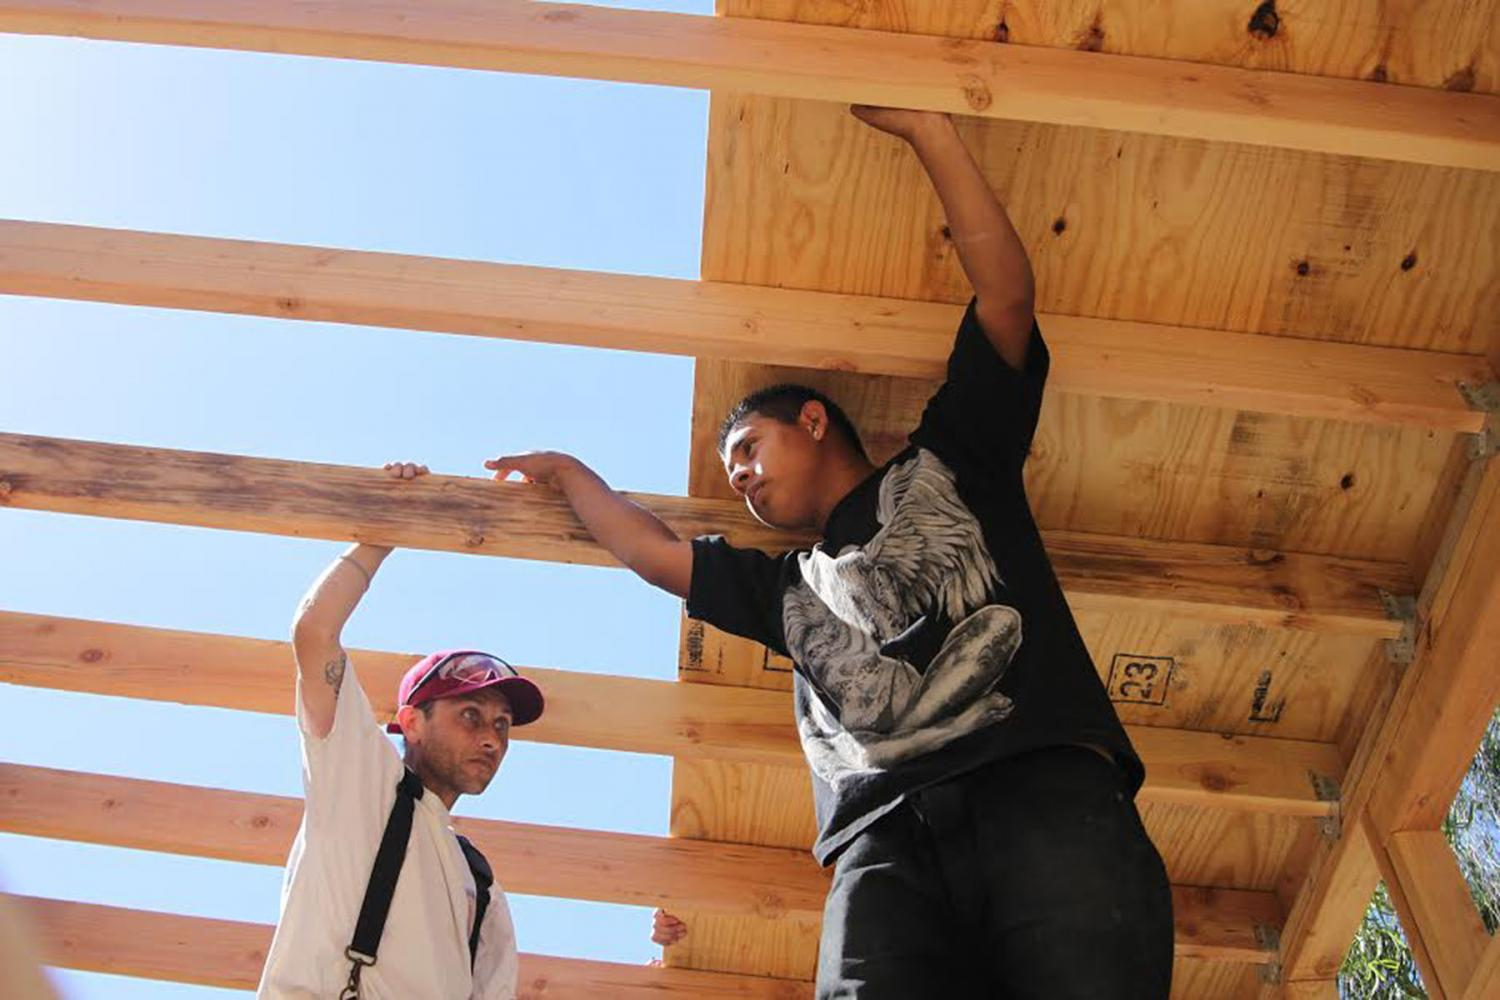 First-year construction students Nathan McBrayer and Jonathan Pena hold onto the wood panels inside the tiny house on Saturday, April 29, at Wake Campus. By the end of the semester, students will have finished the frame, roof and walls of the tiny house.